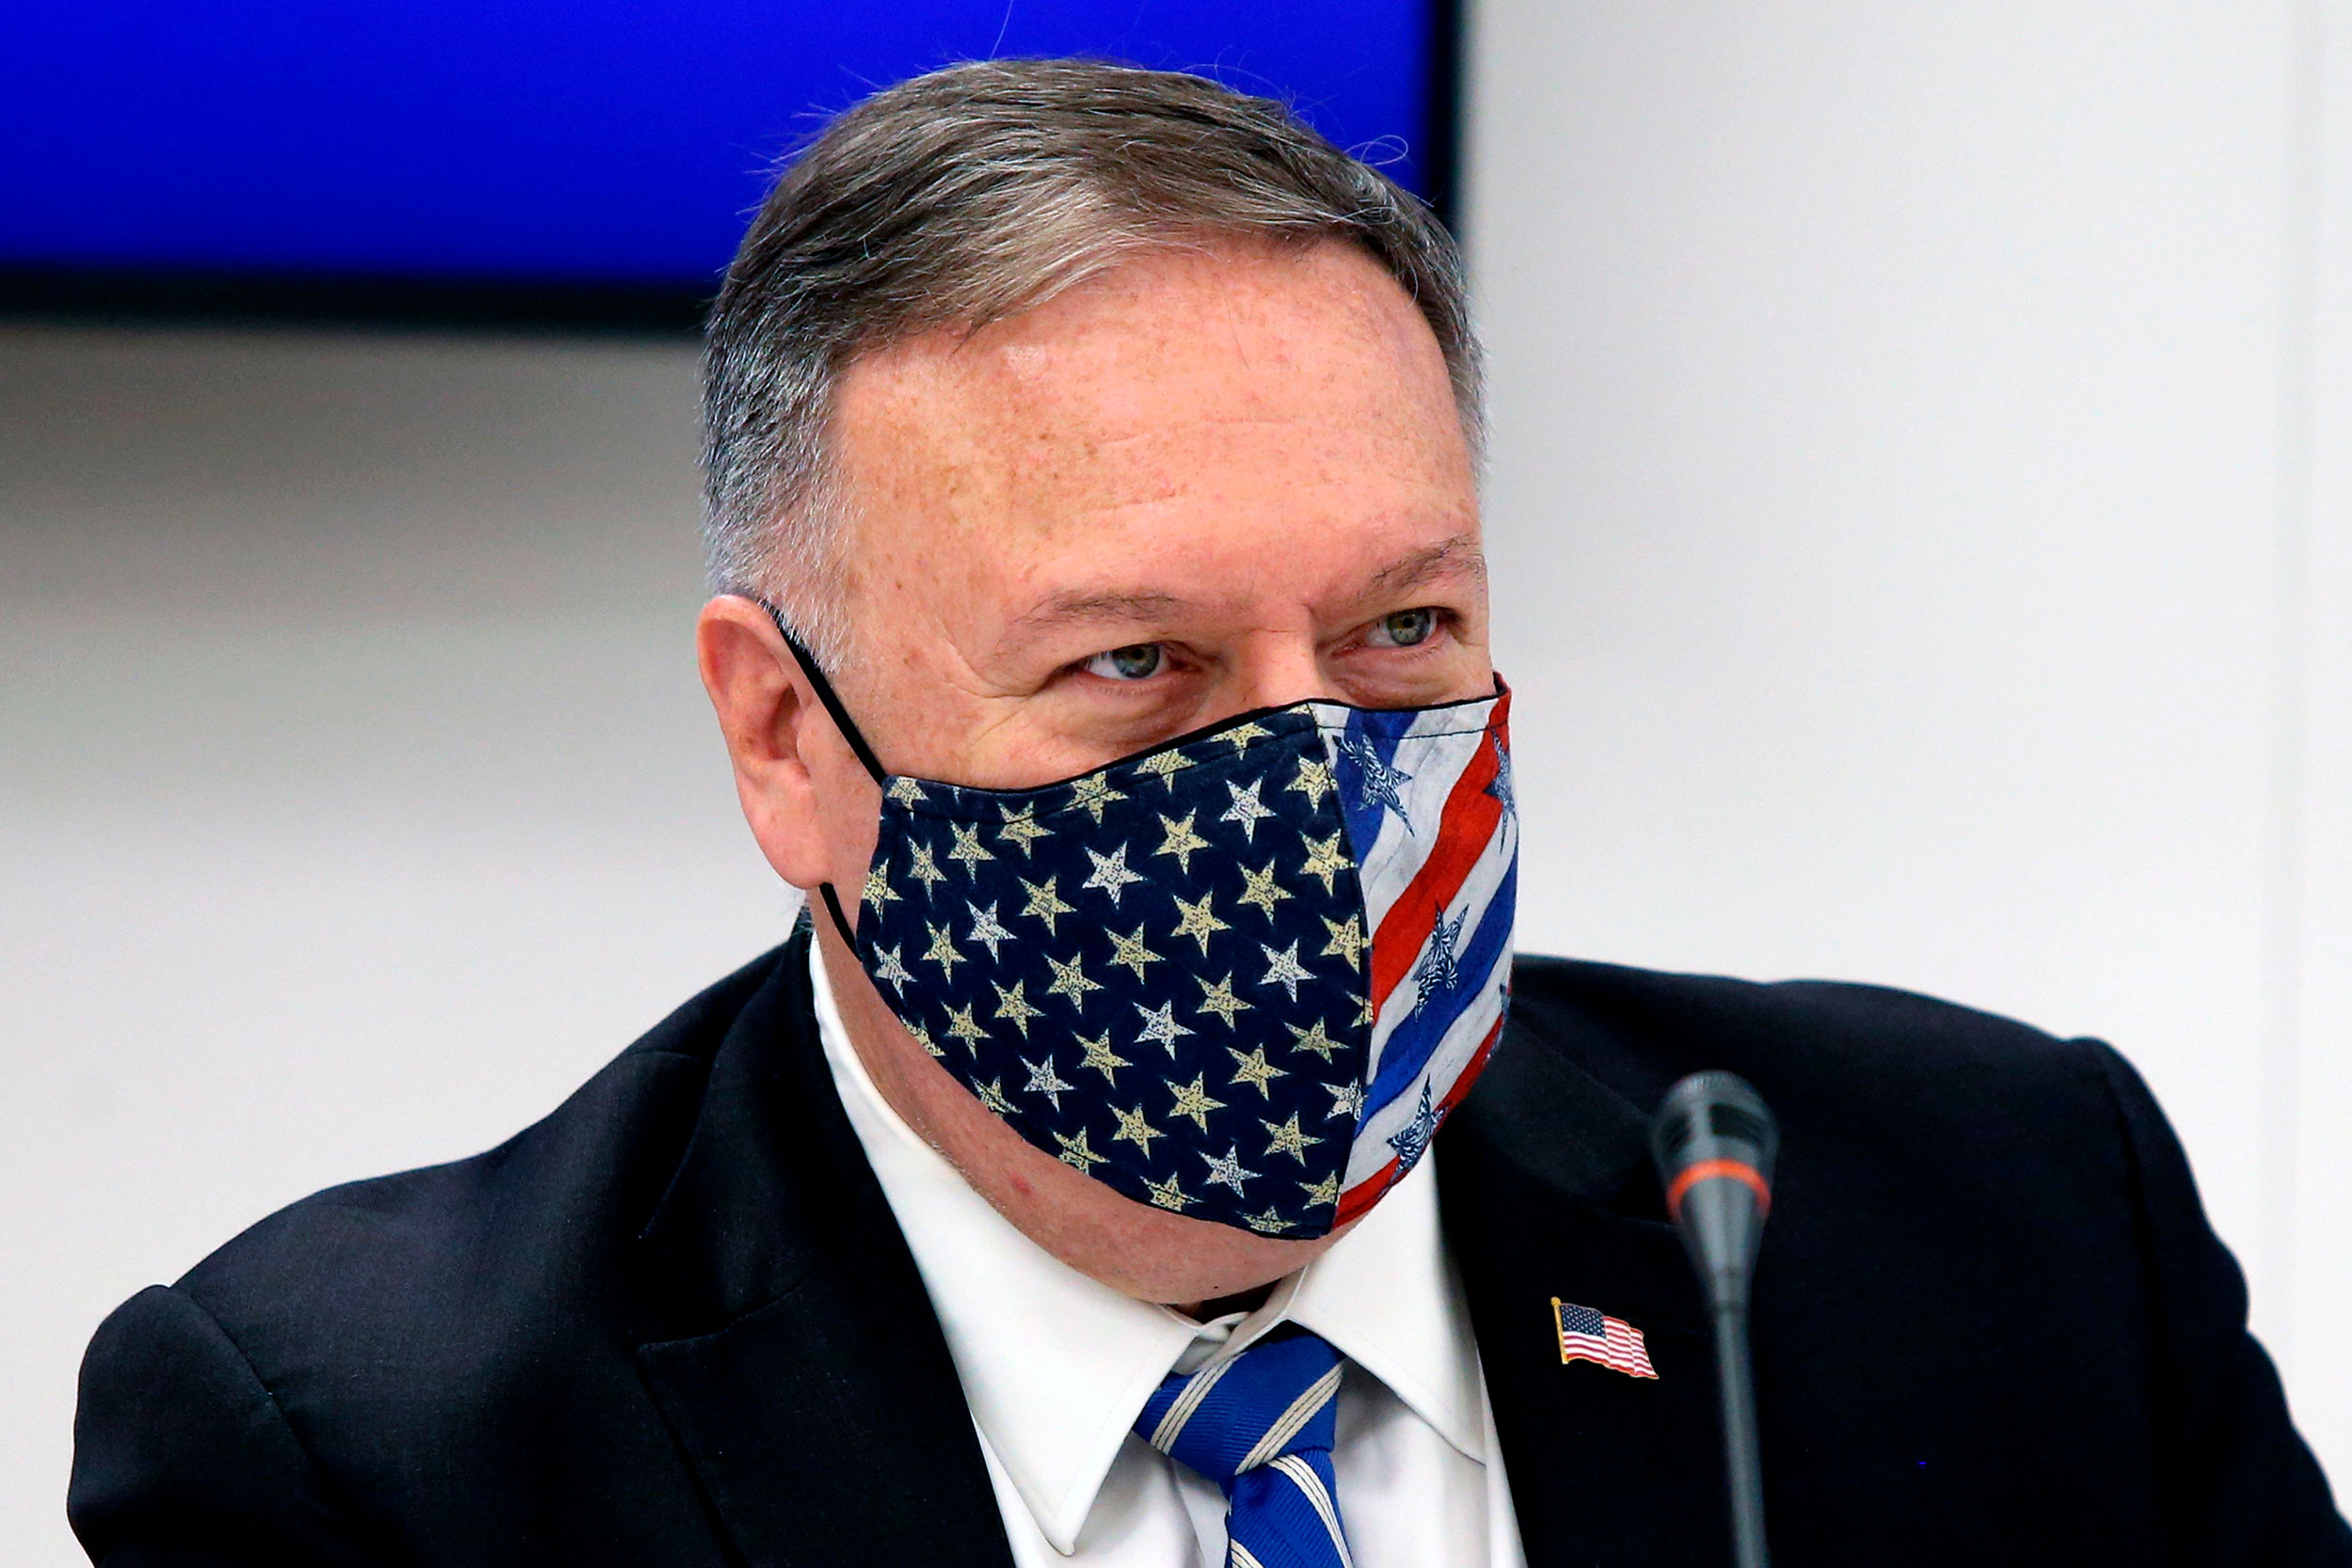 US Secretary of State Mike Pompeo attends a signing agreement ceremony in Thessaloniki, Greece, on September 28.